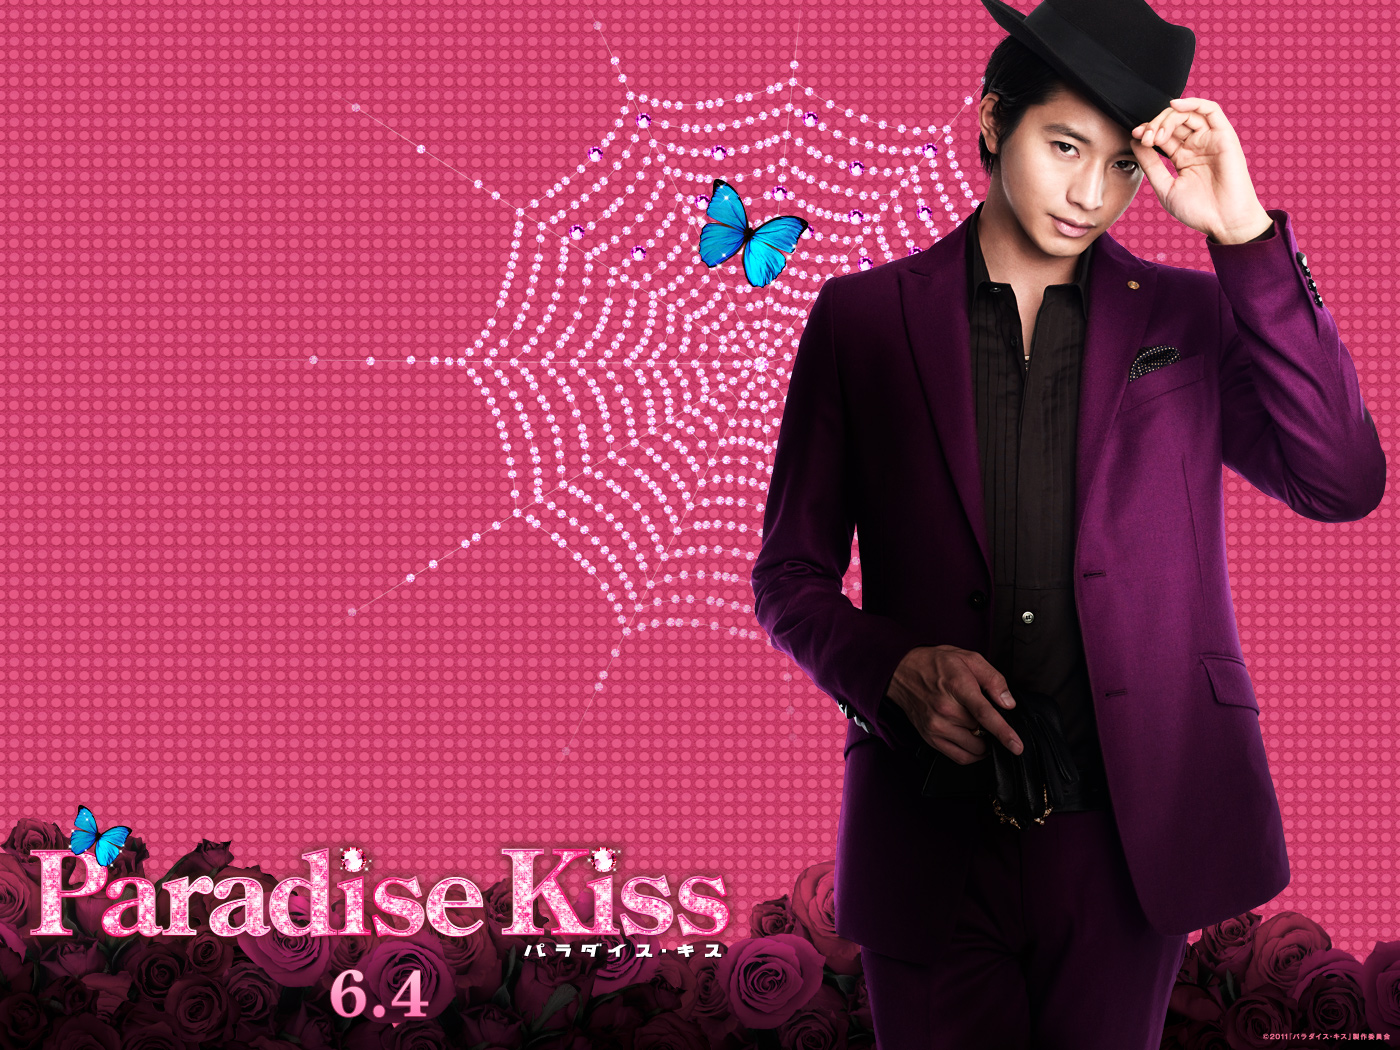 paradise, kiss, wallpaper, 1400x1050, Movies, wallpapers, фото